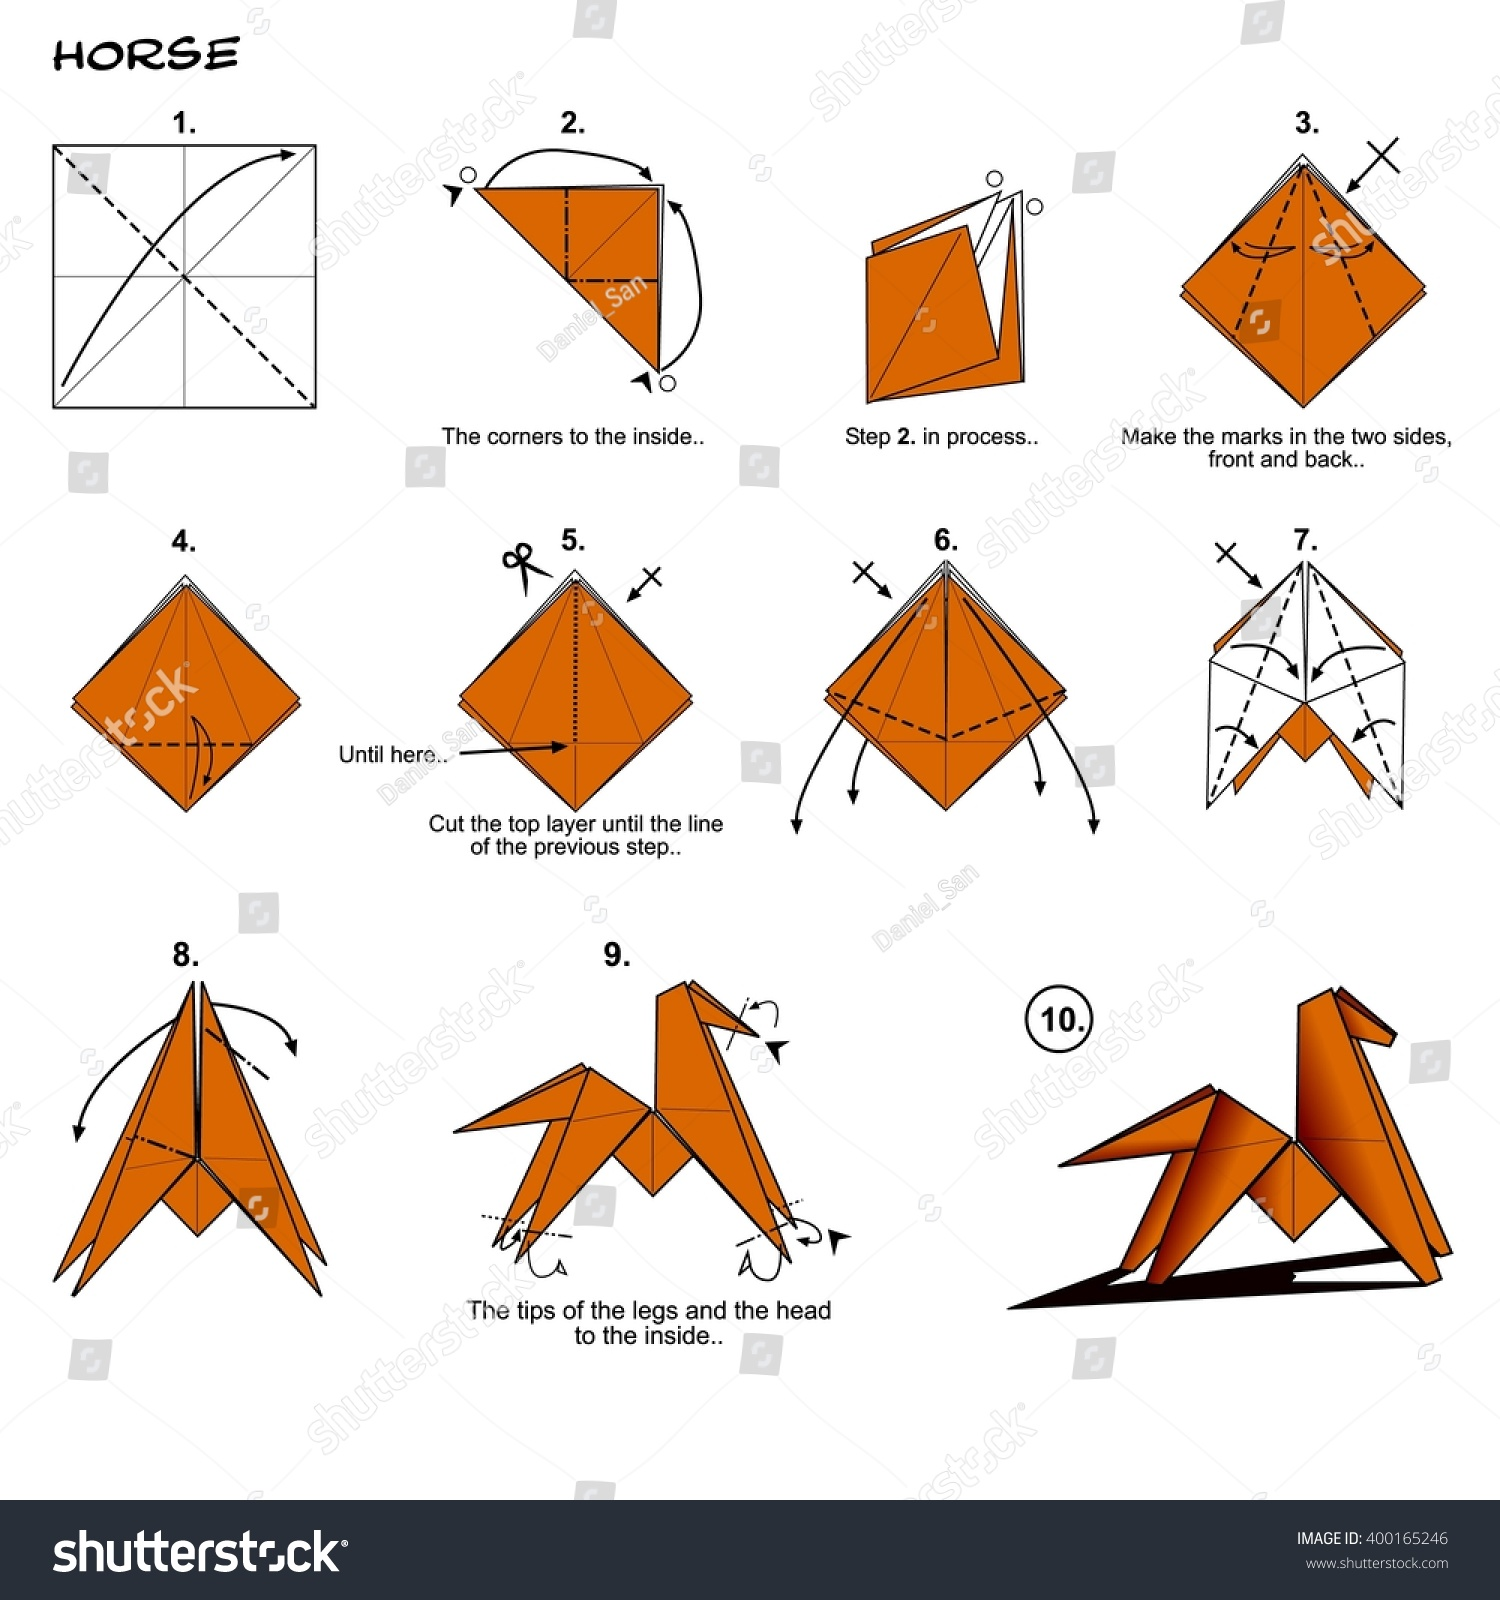 Origami Animal Traditional Horse Diagram Instructions Stock - Origamis-animales